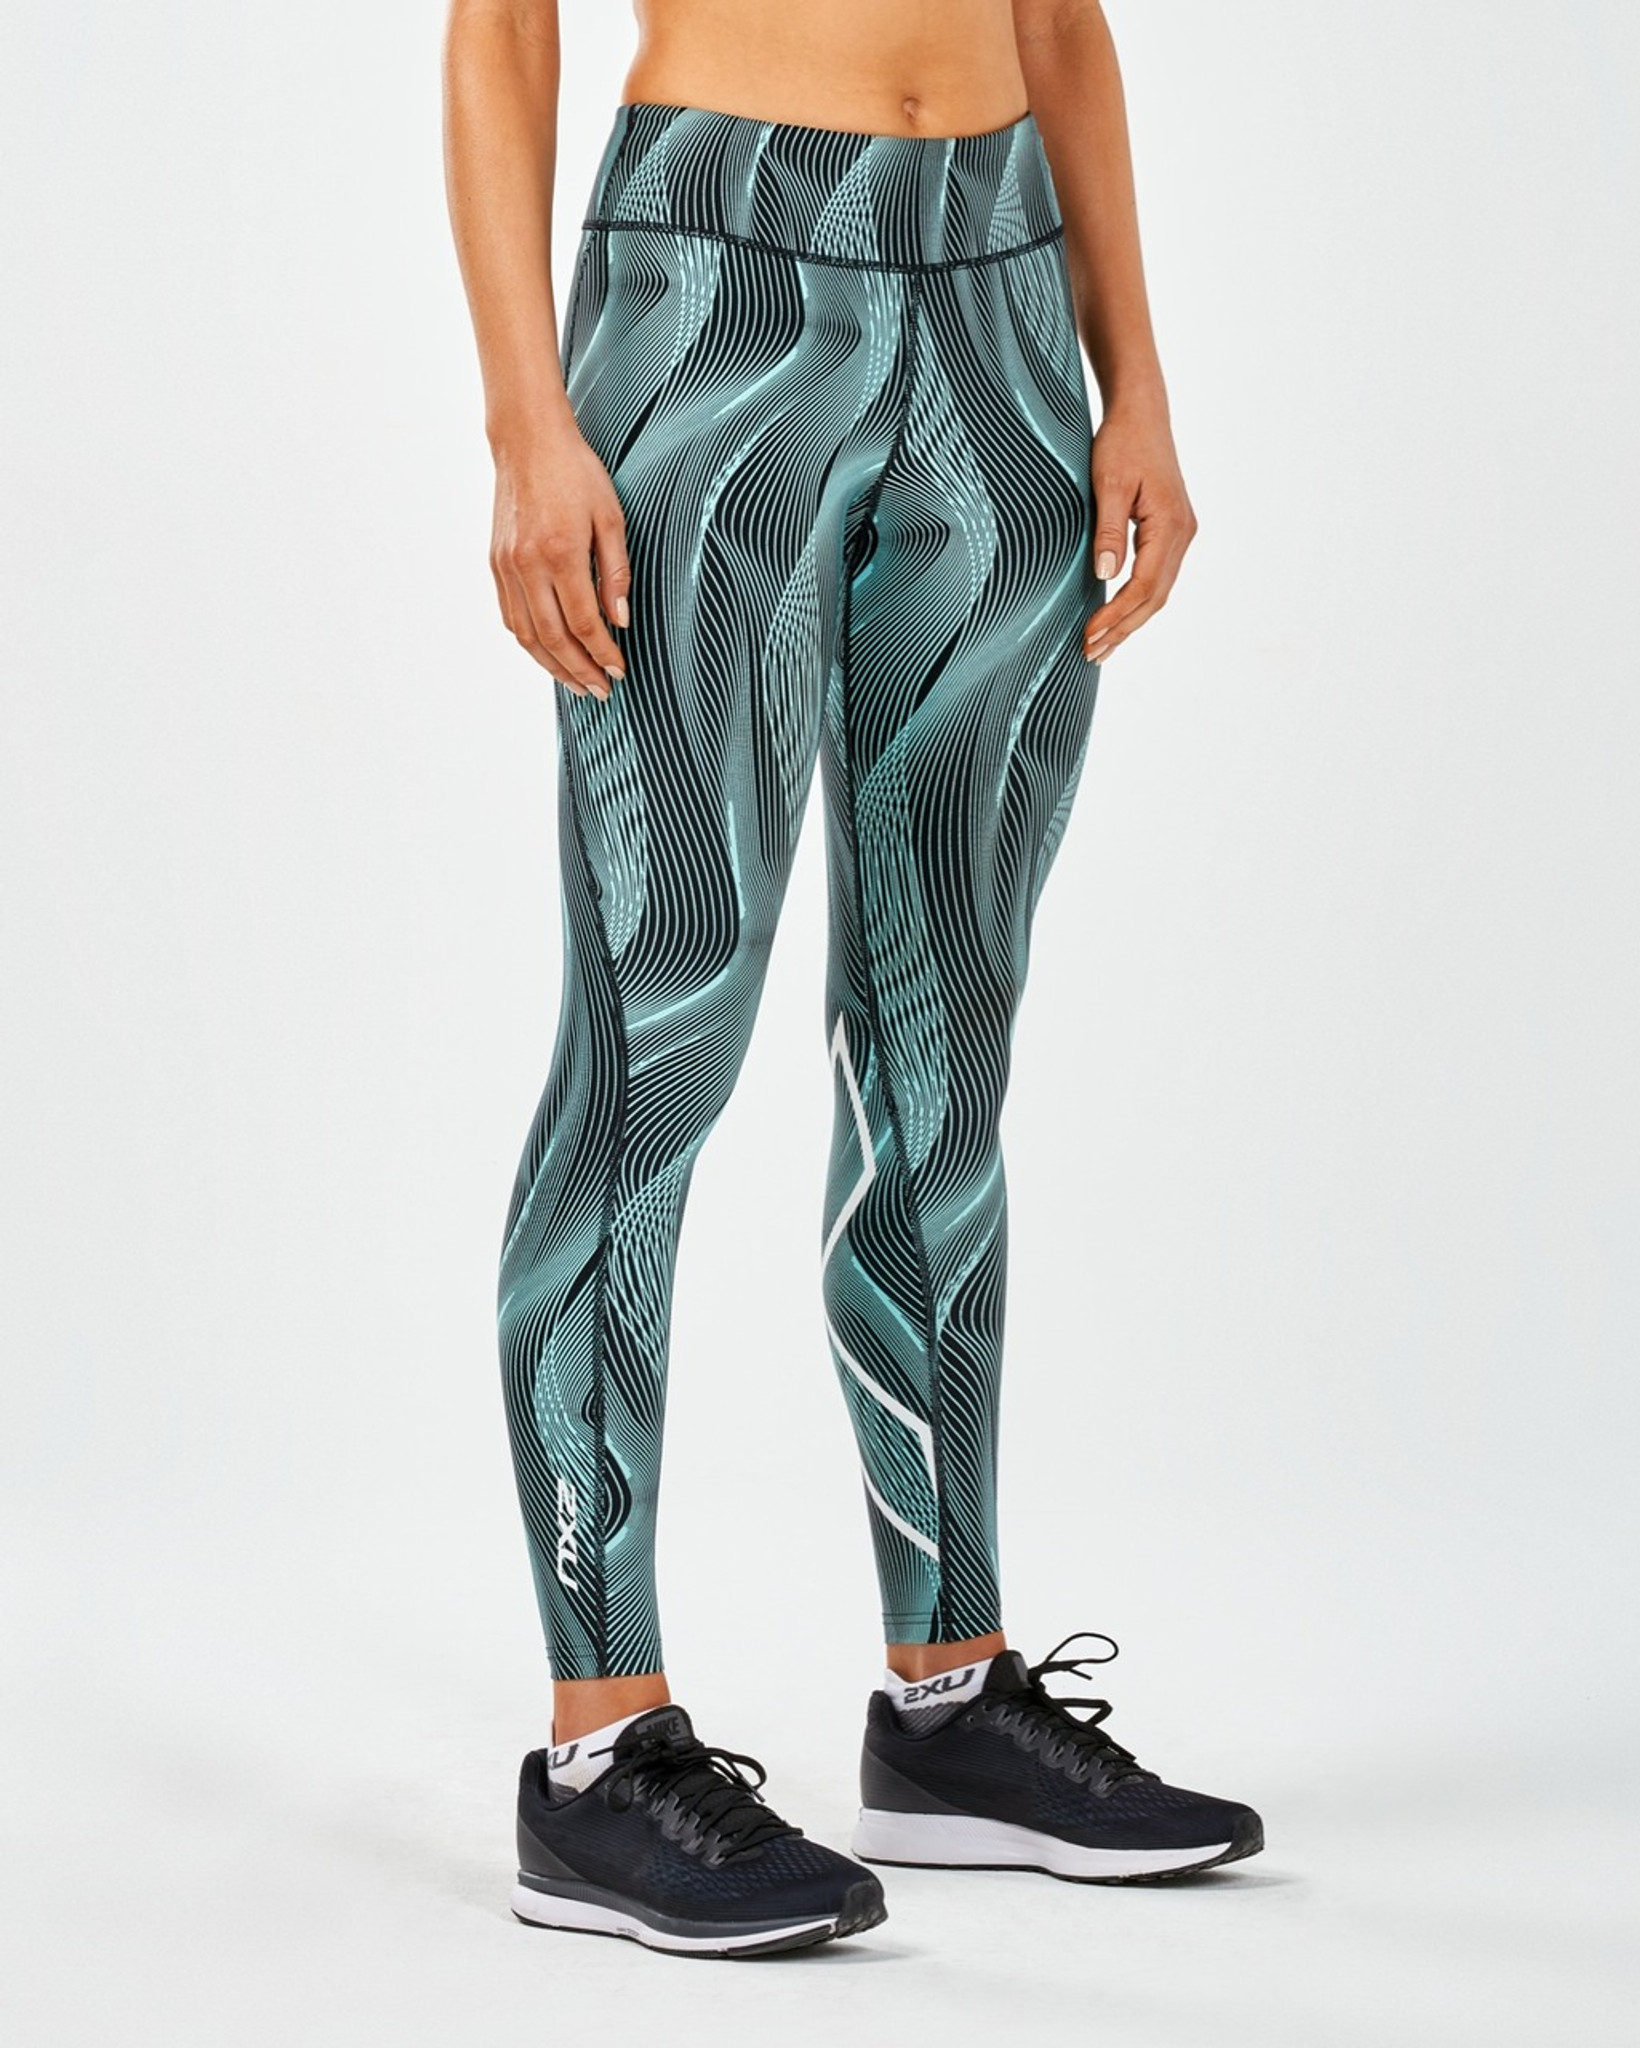 a3d592b9dc 2XU Mid-Rise Print Tight with Storage - MyTriathlon